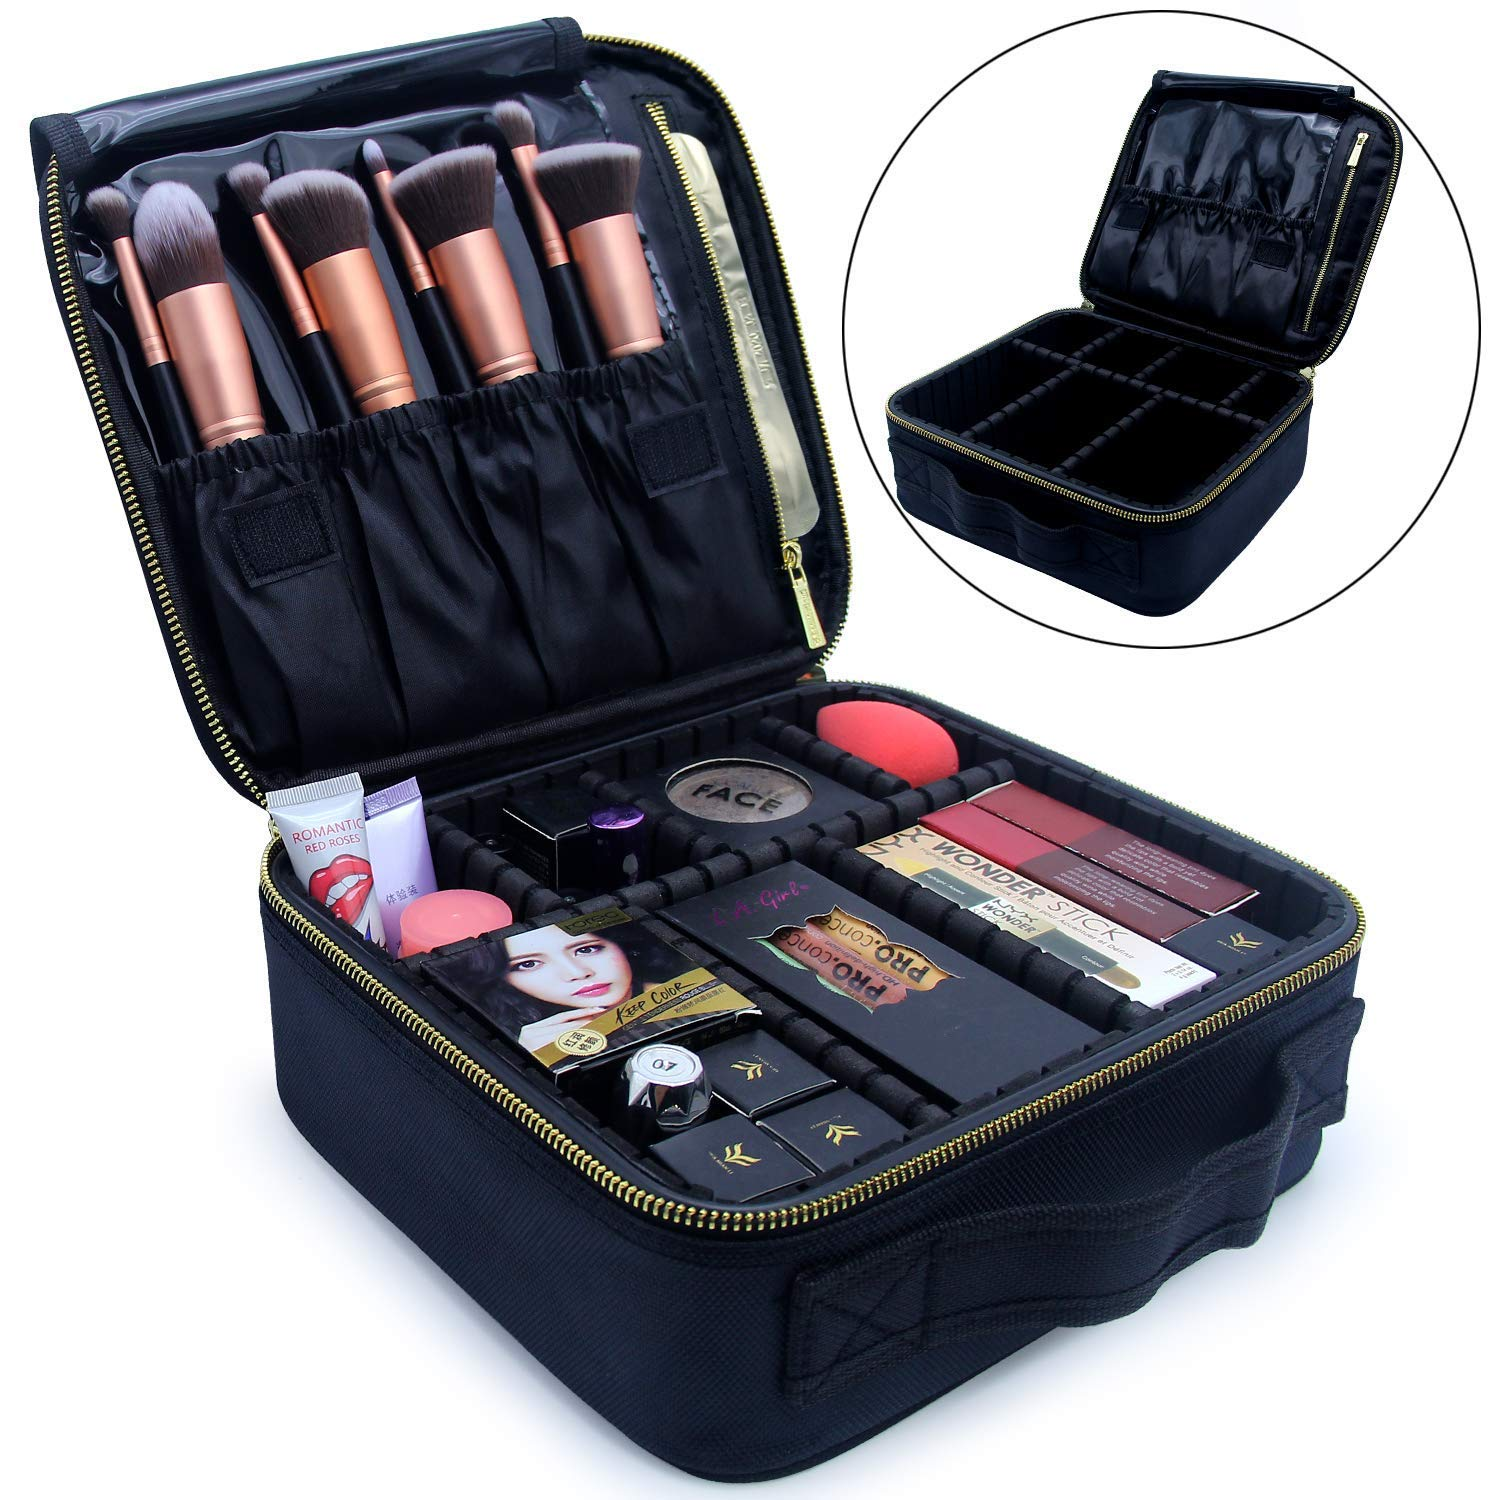 Makeup Case Make Up Travel Bag, MLMSY Cosmetic Bag with Gold Zipper Brushes Organizer Portable Waterproof Large Toiletry Bags